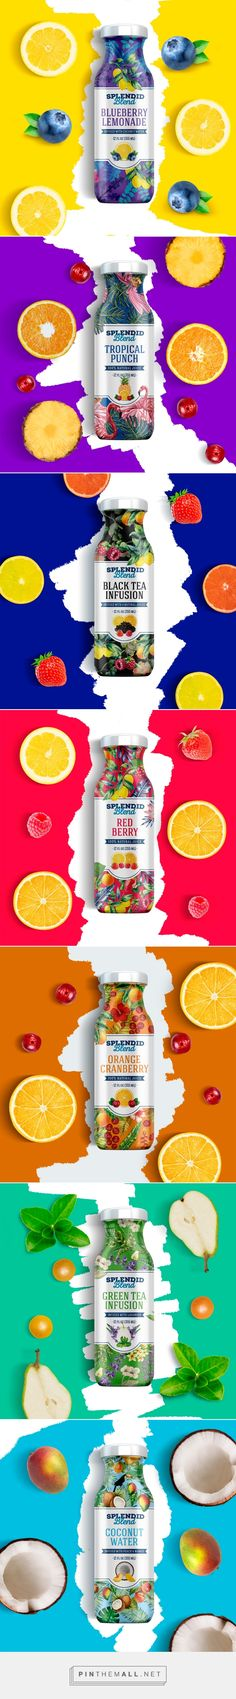 Splendid Blend juice brand /  redesign / by alex madrid                                                                                                                                                                                 More